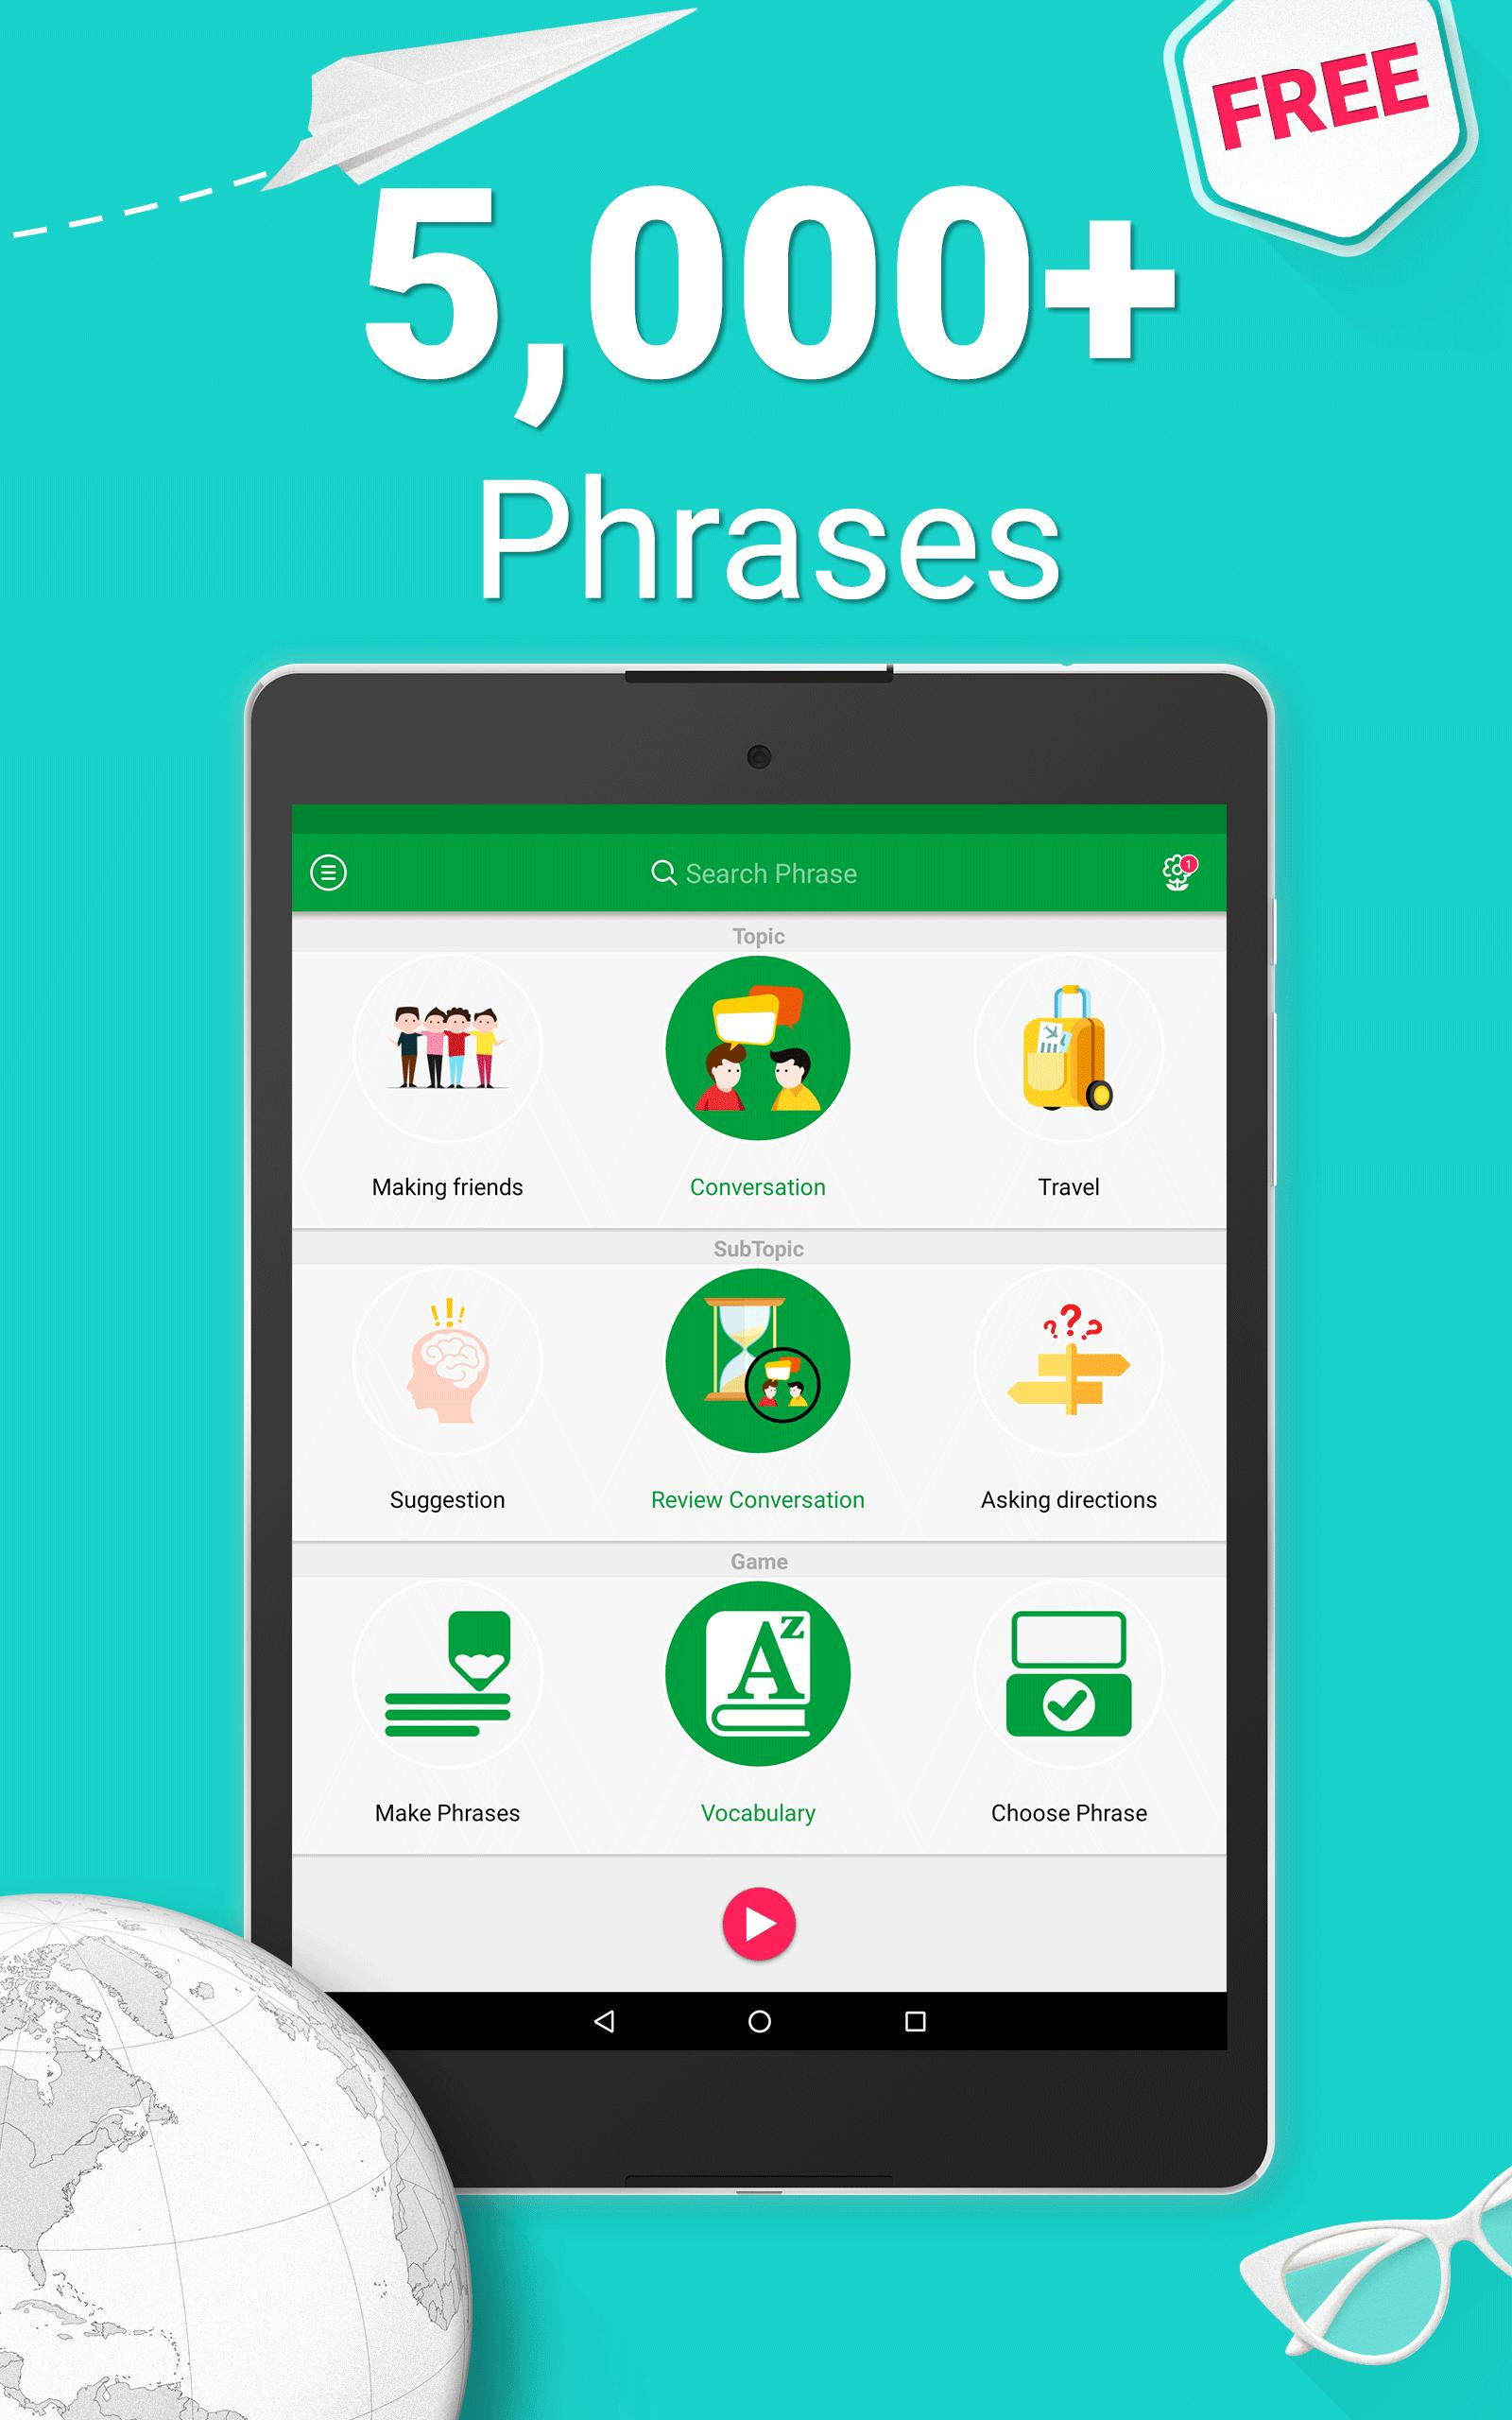 Speak English - 5000 Phrases & Sentences for Android - APK Download